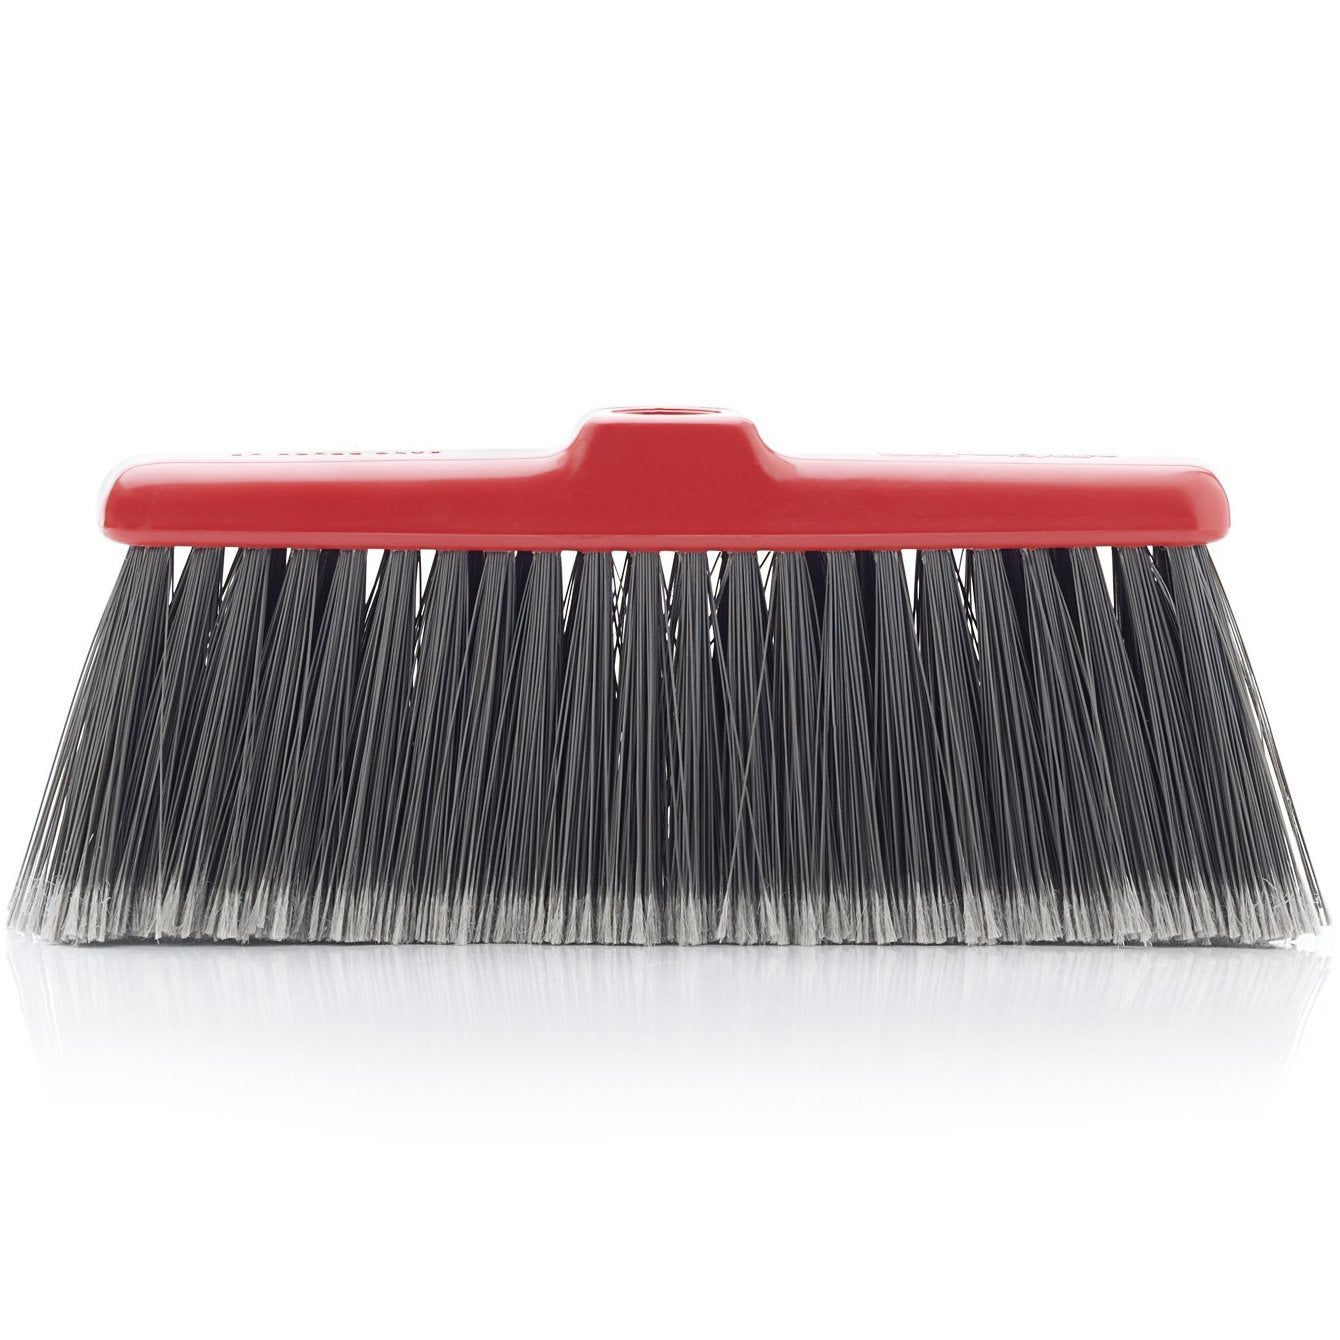 Fiesta Red Heavy Duty Long Bristle Broom Head - Fine Bristles Floor Sweeper-Brooms-Fuller Brush Company